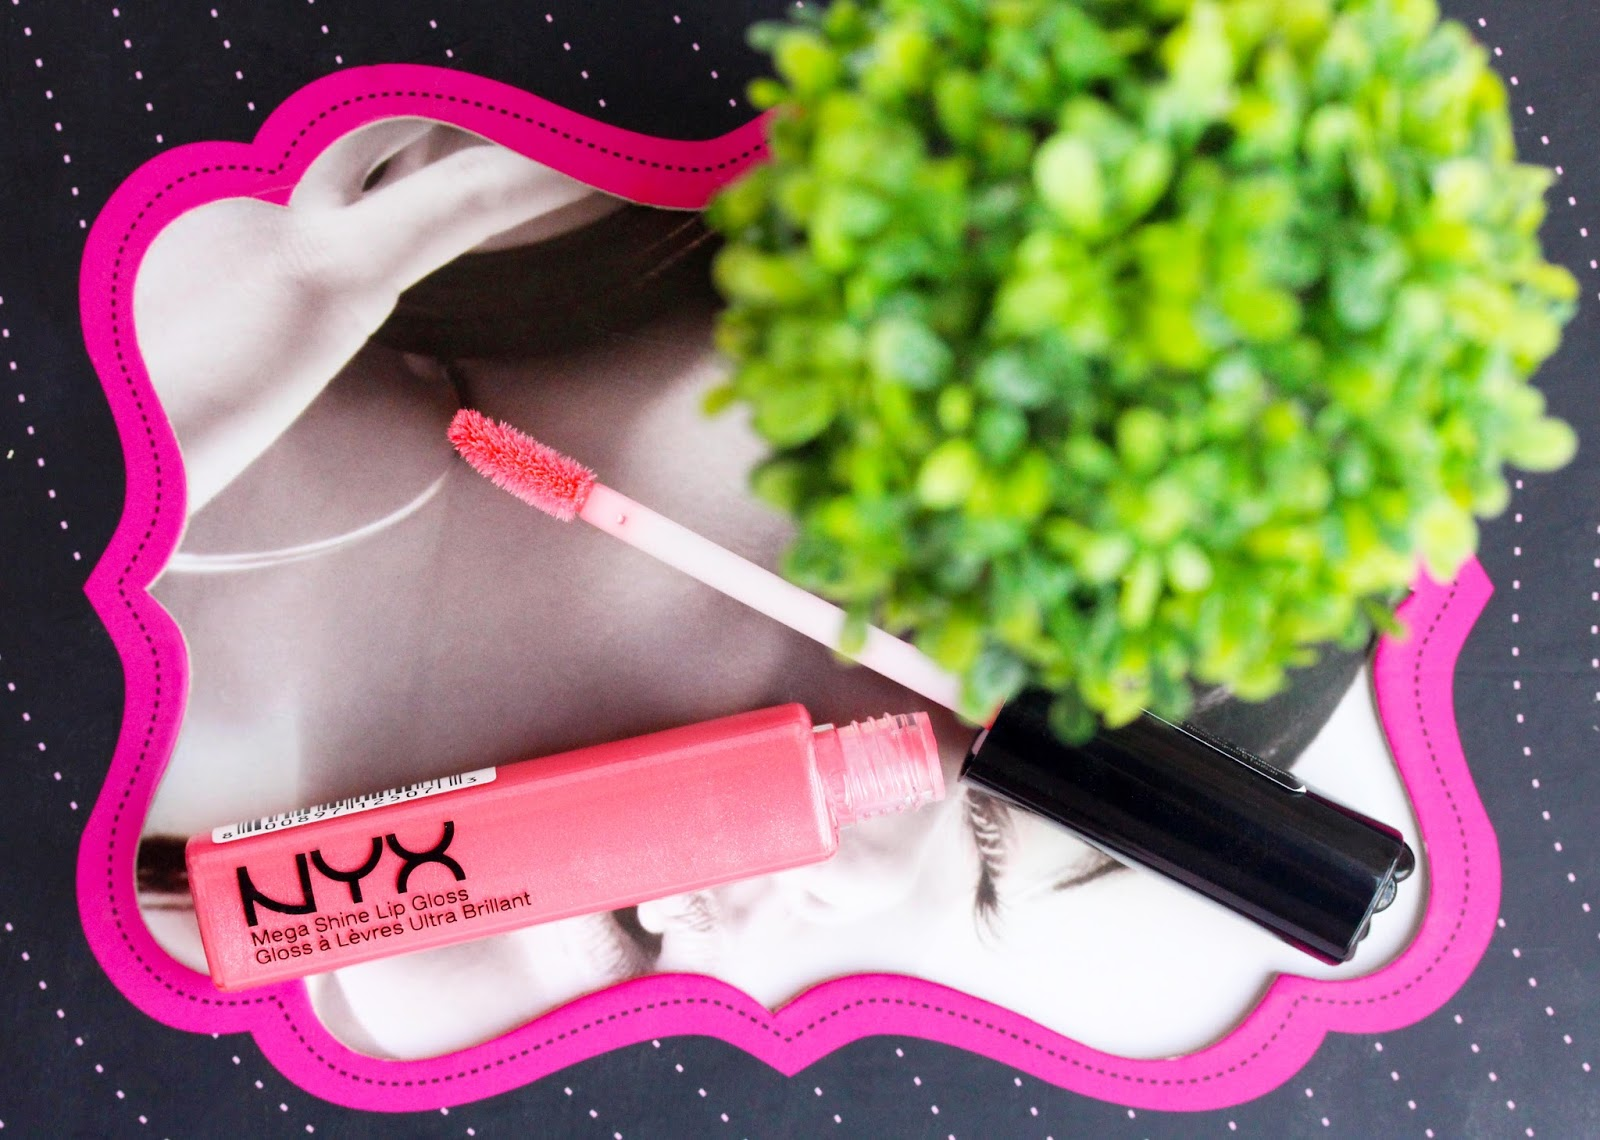 NYX Mega Shine Lip Gloss in La La